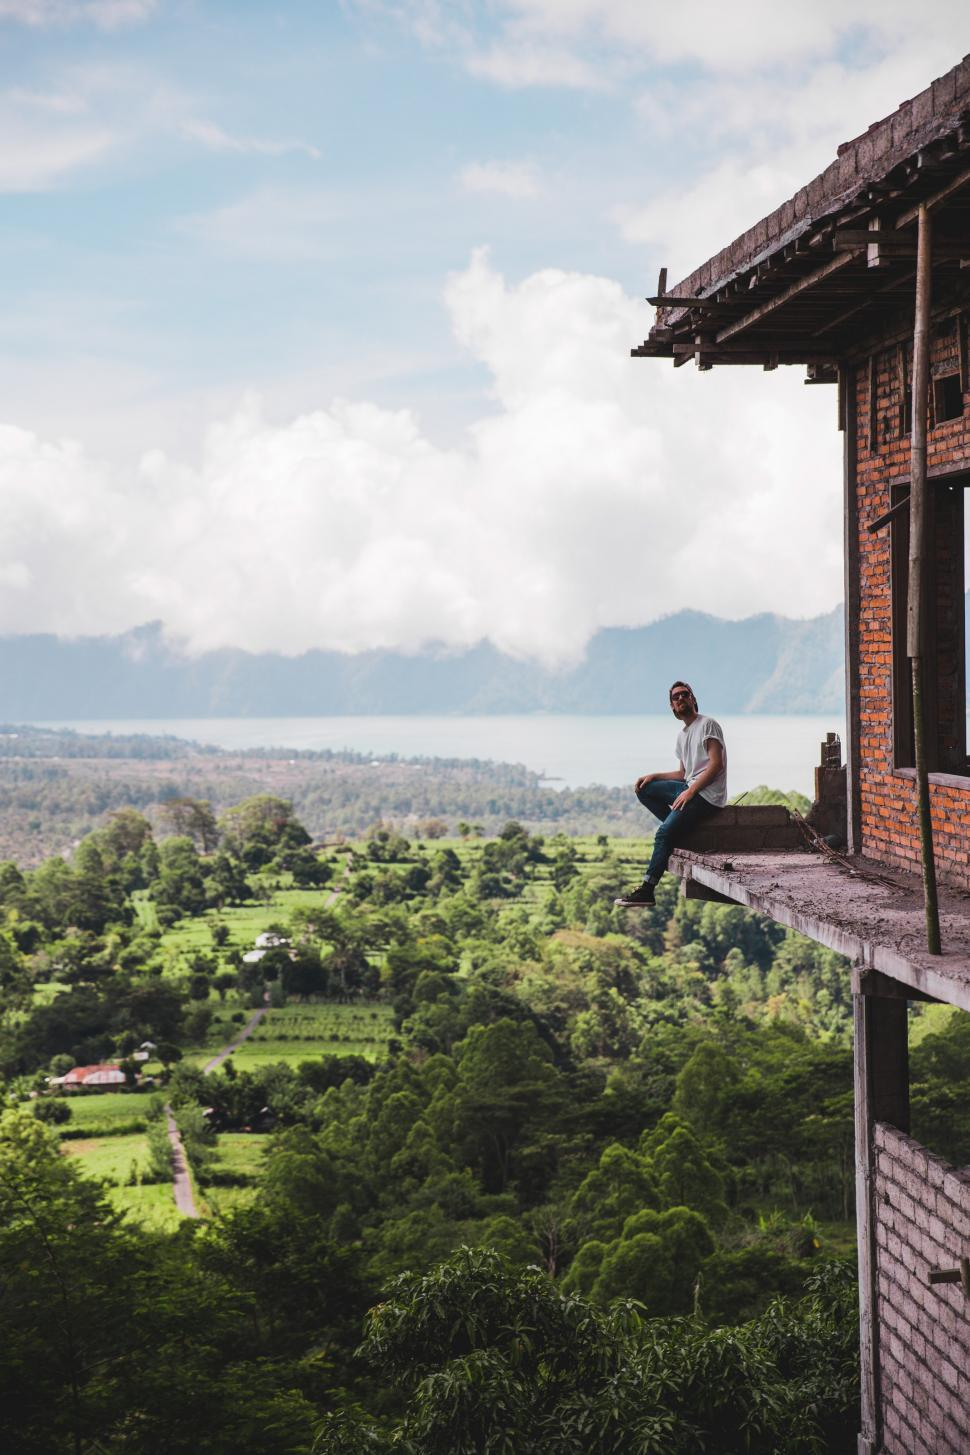 Download Free Stock HD Photo of A young Caucasian man sitting on the edge of a balcony Online